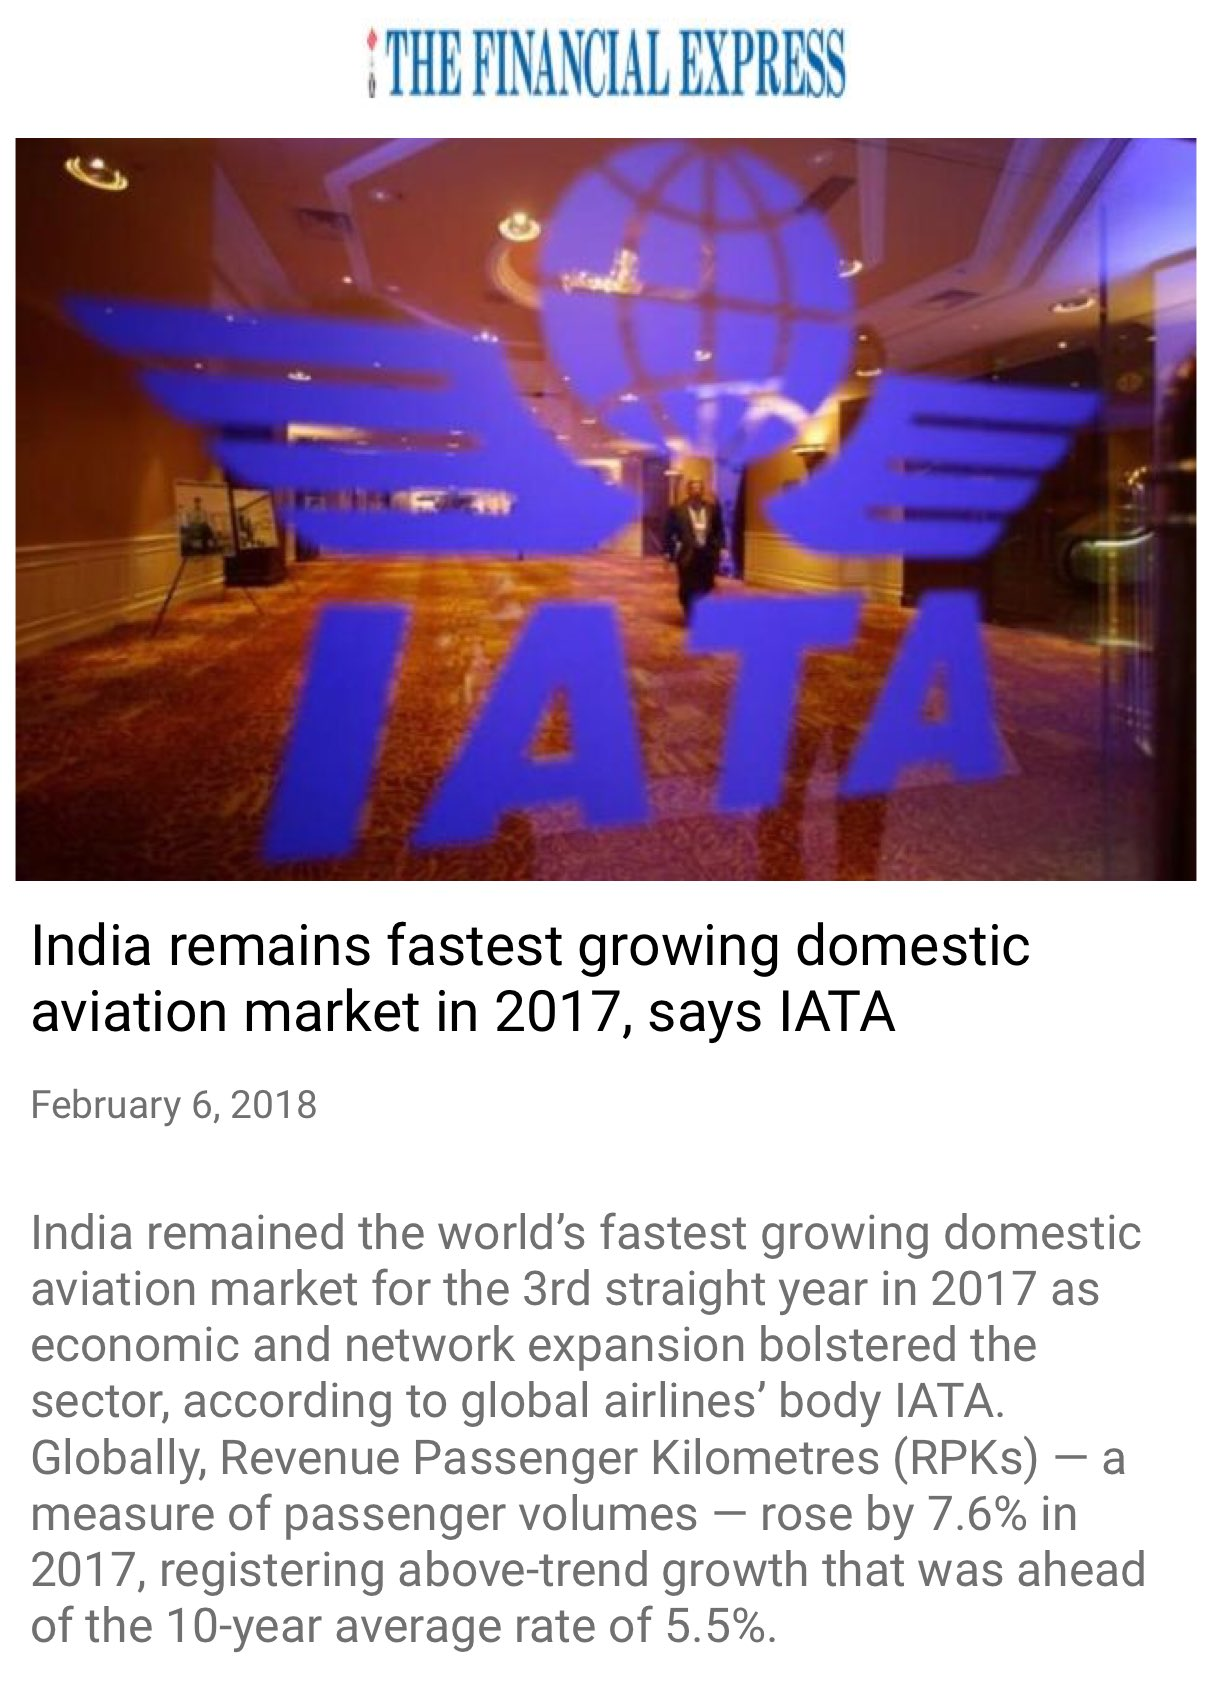 India remains fastest growing domestic aviation market in 2017, says IATA.  https://t.co/cetZlNMtwJ  via NMApp https://t.co/n3OGIGpYal